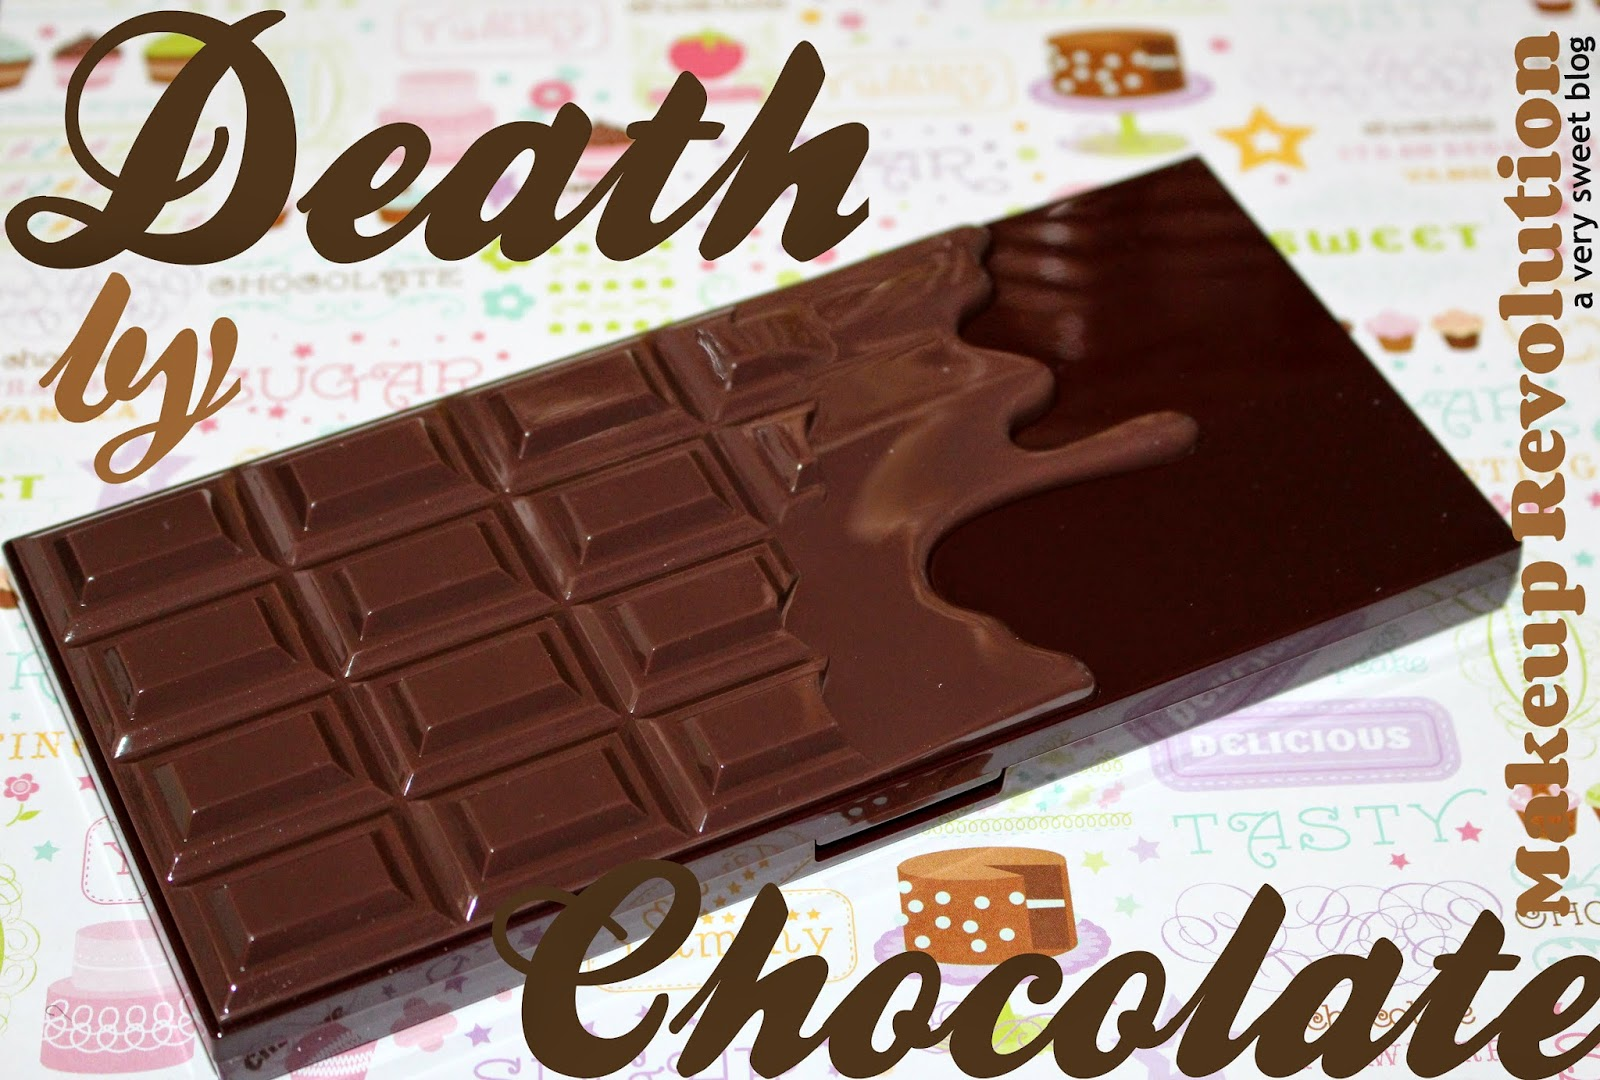 death by chocolate Death by chocolate mumbai death by chocolate, chandivali order online from death by chocolate in mumbai get menu, reviews, order online, home delivery, delivery, contact, location, phone number, maps and more for death by chocolate restaurant on zomato.